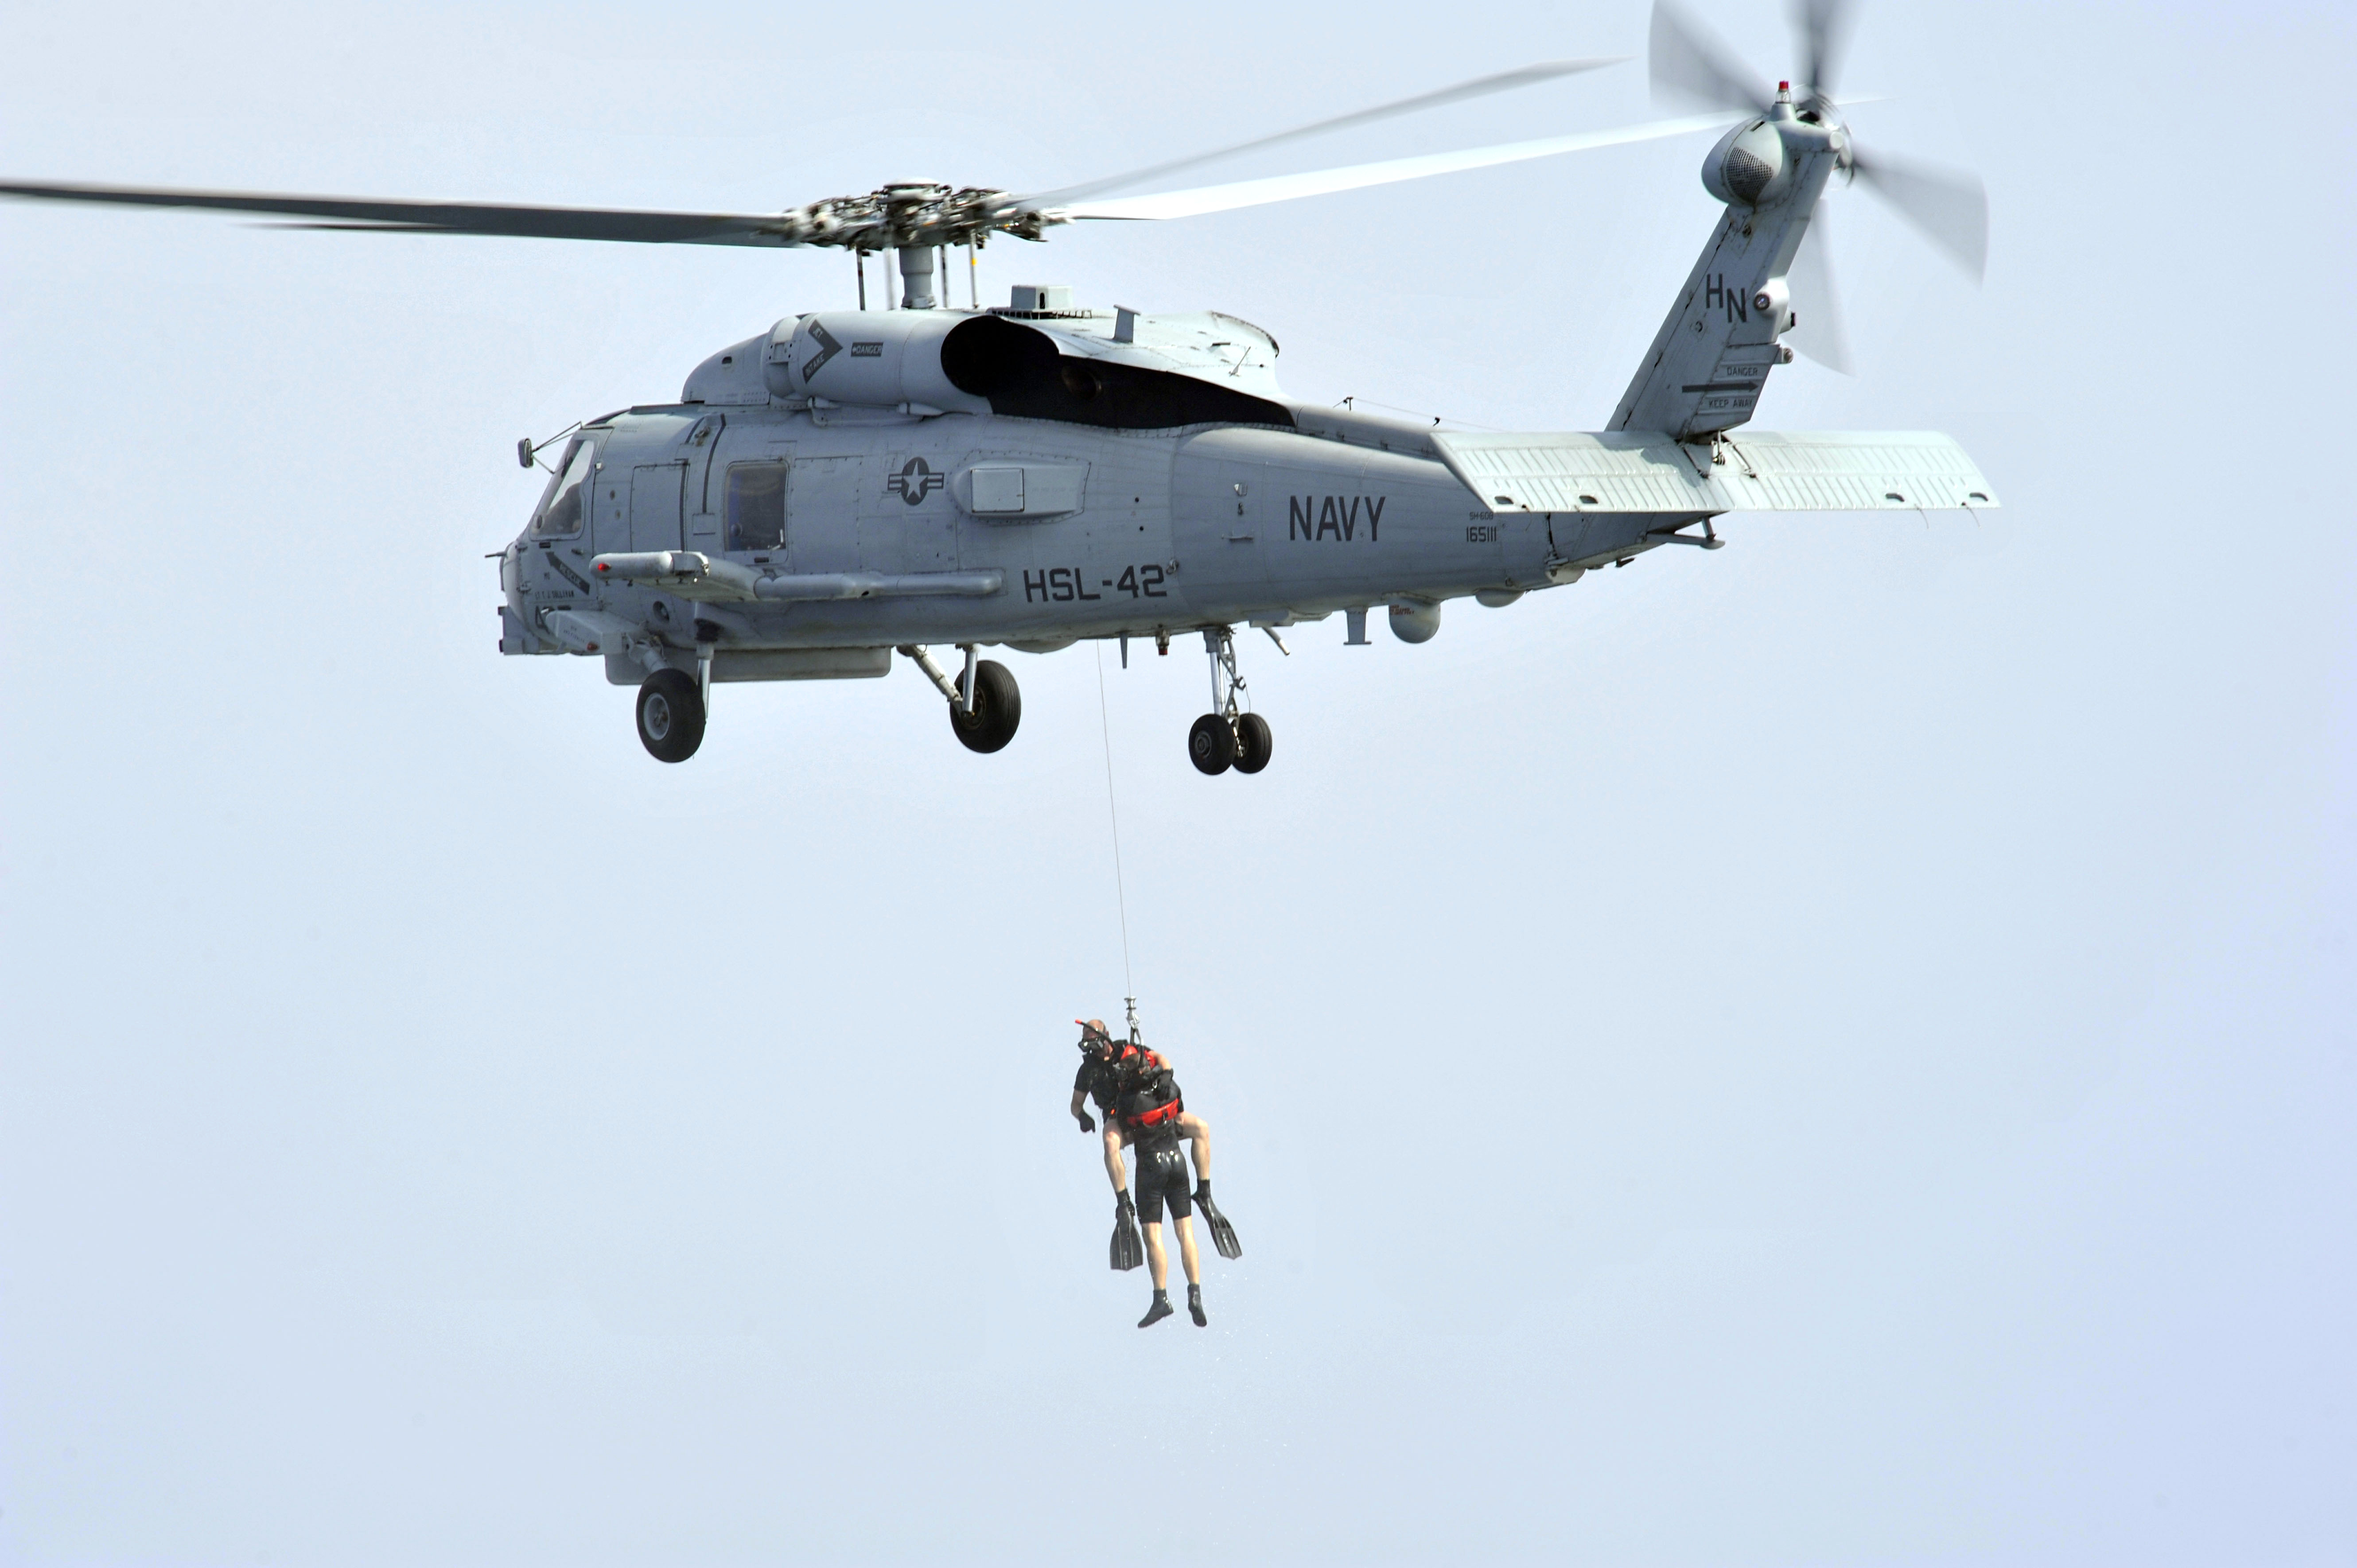 File:U.S. Navy rescue swimmers are hoisted from the water by an SH